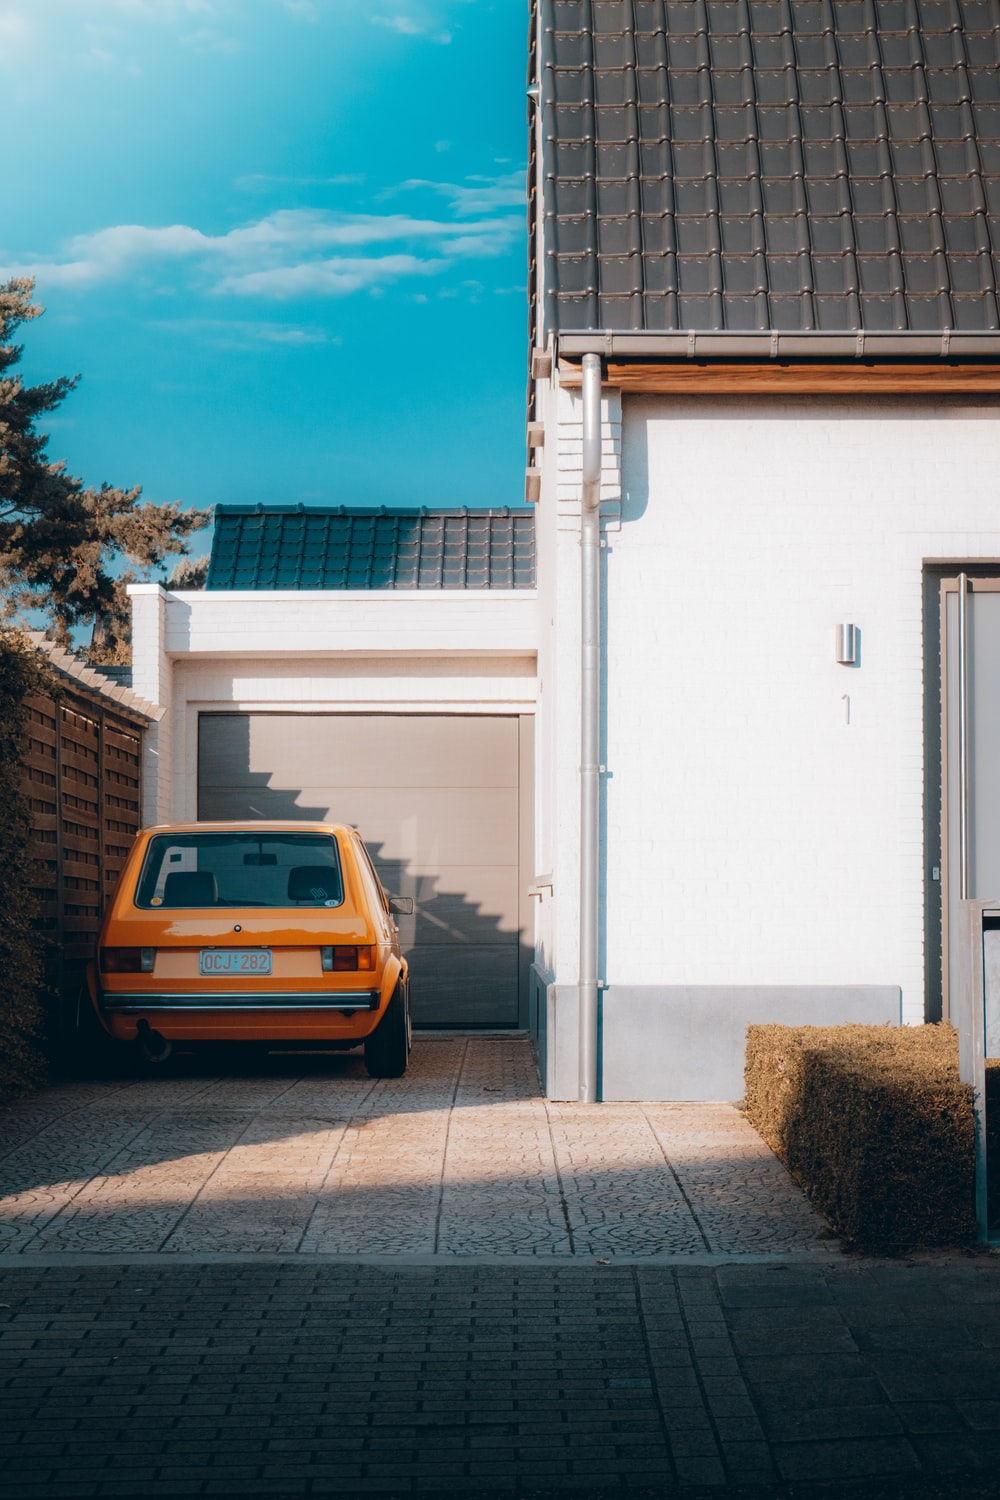 yellow car parked beside white building